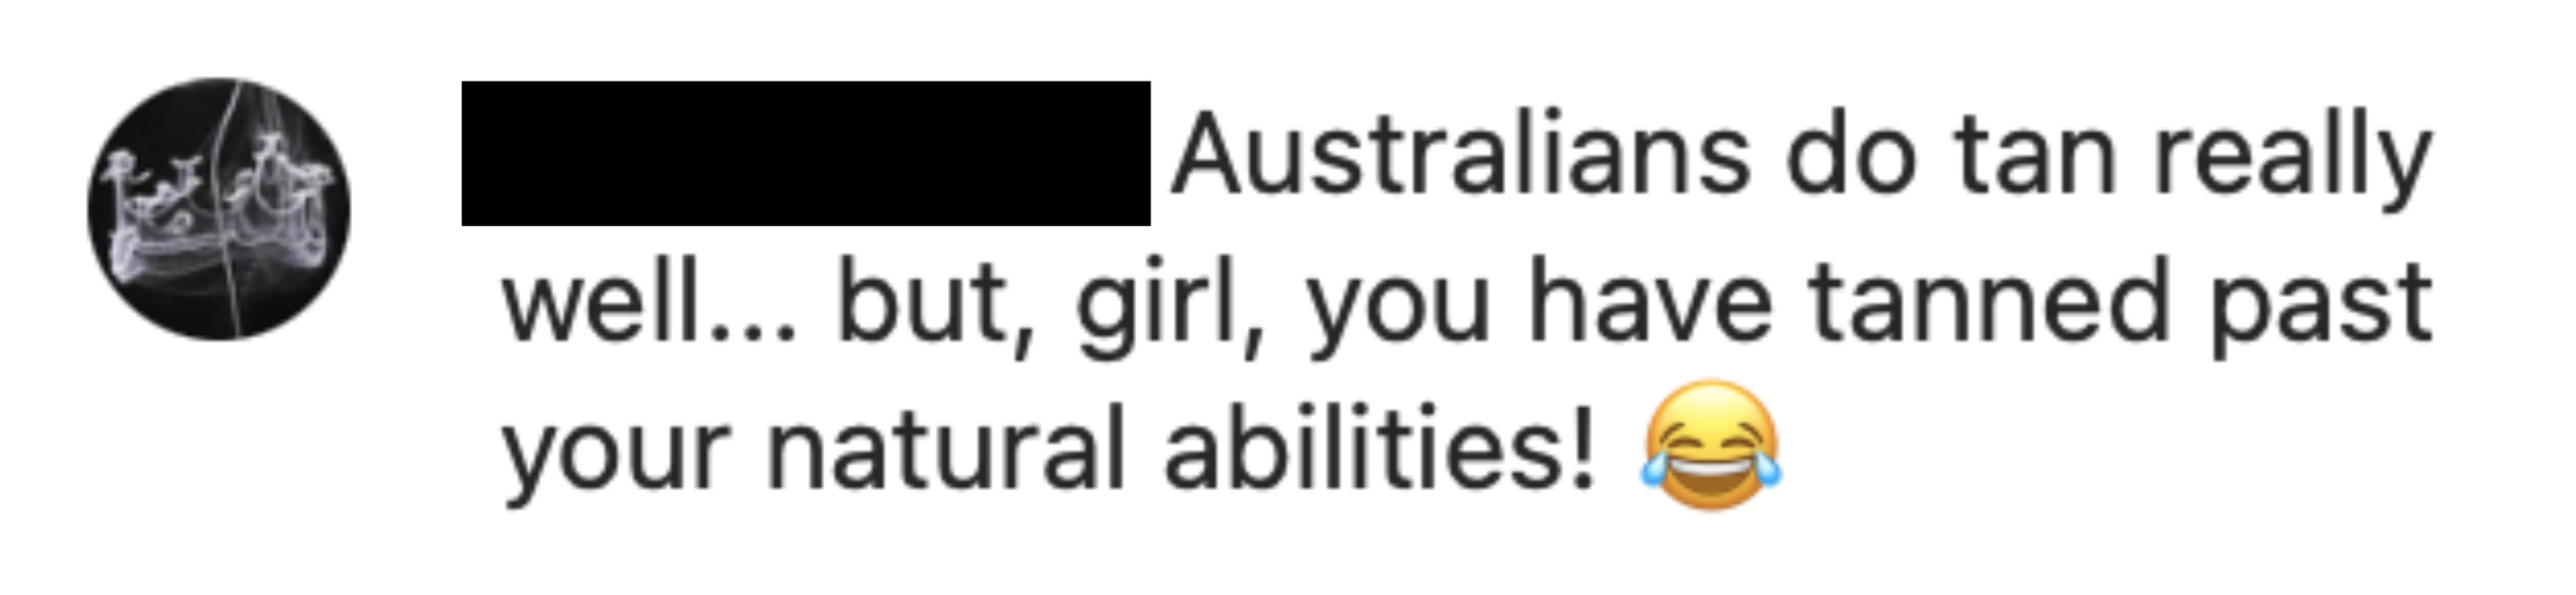 Australians do tan really well..but, girl, you have tanned past your natural abilities! [crying laughing emoji]